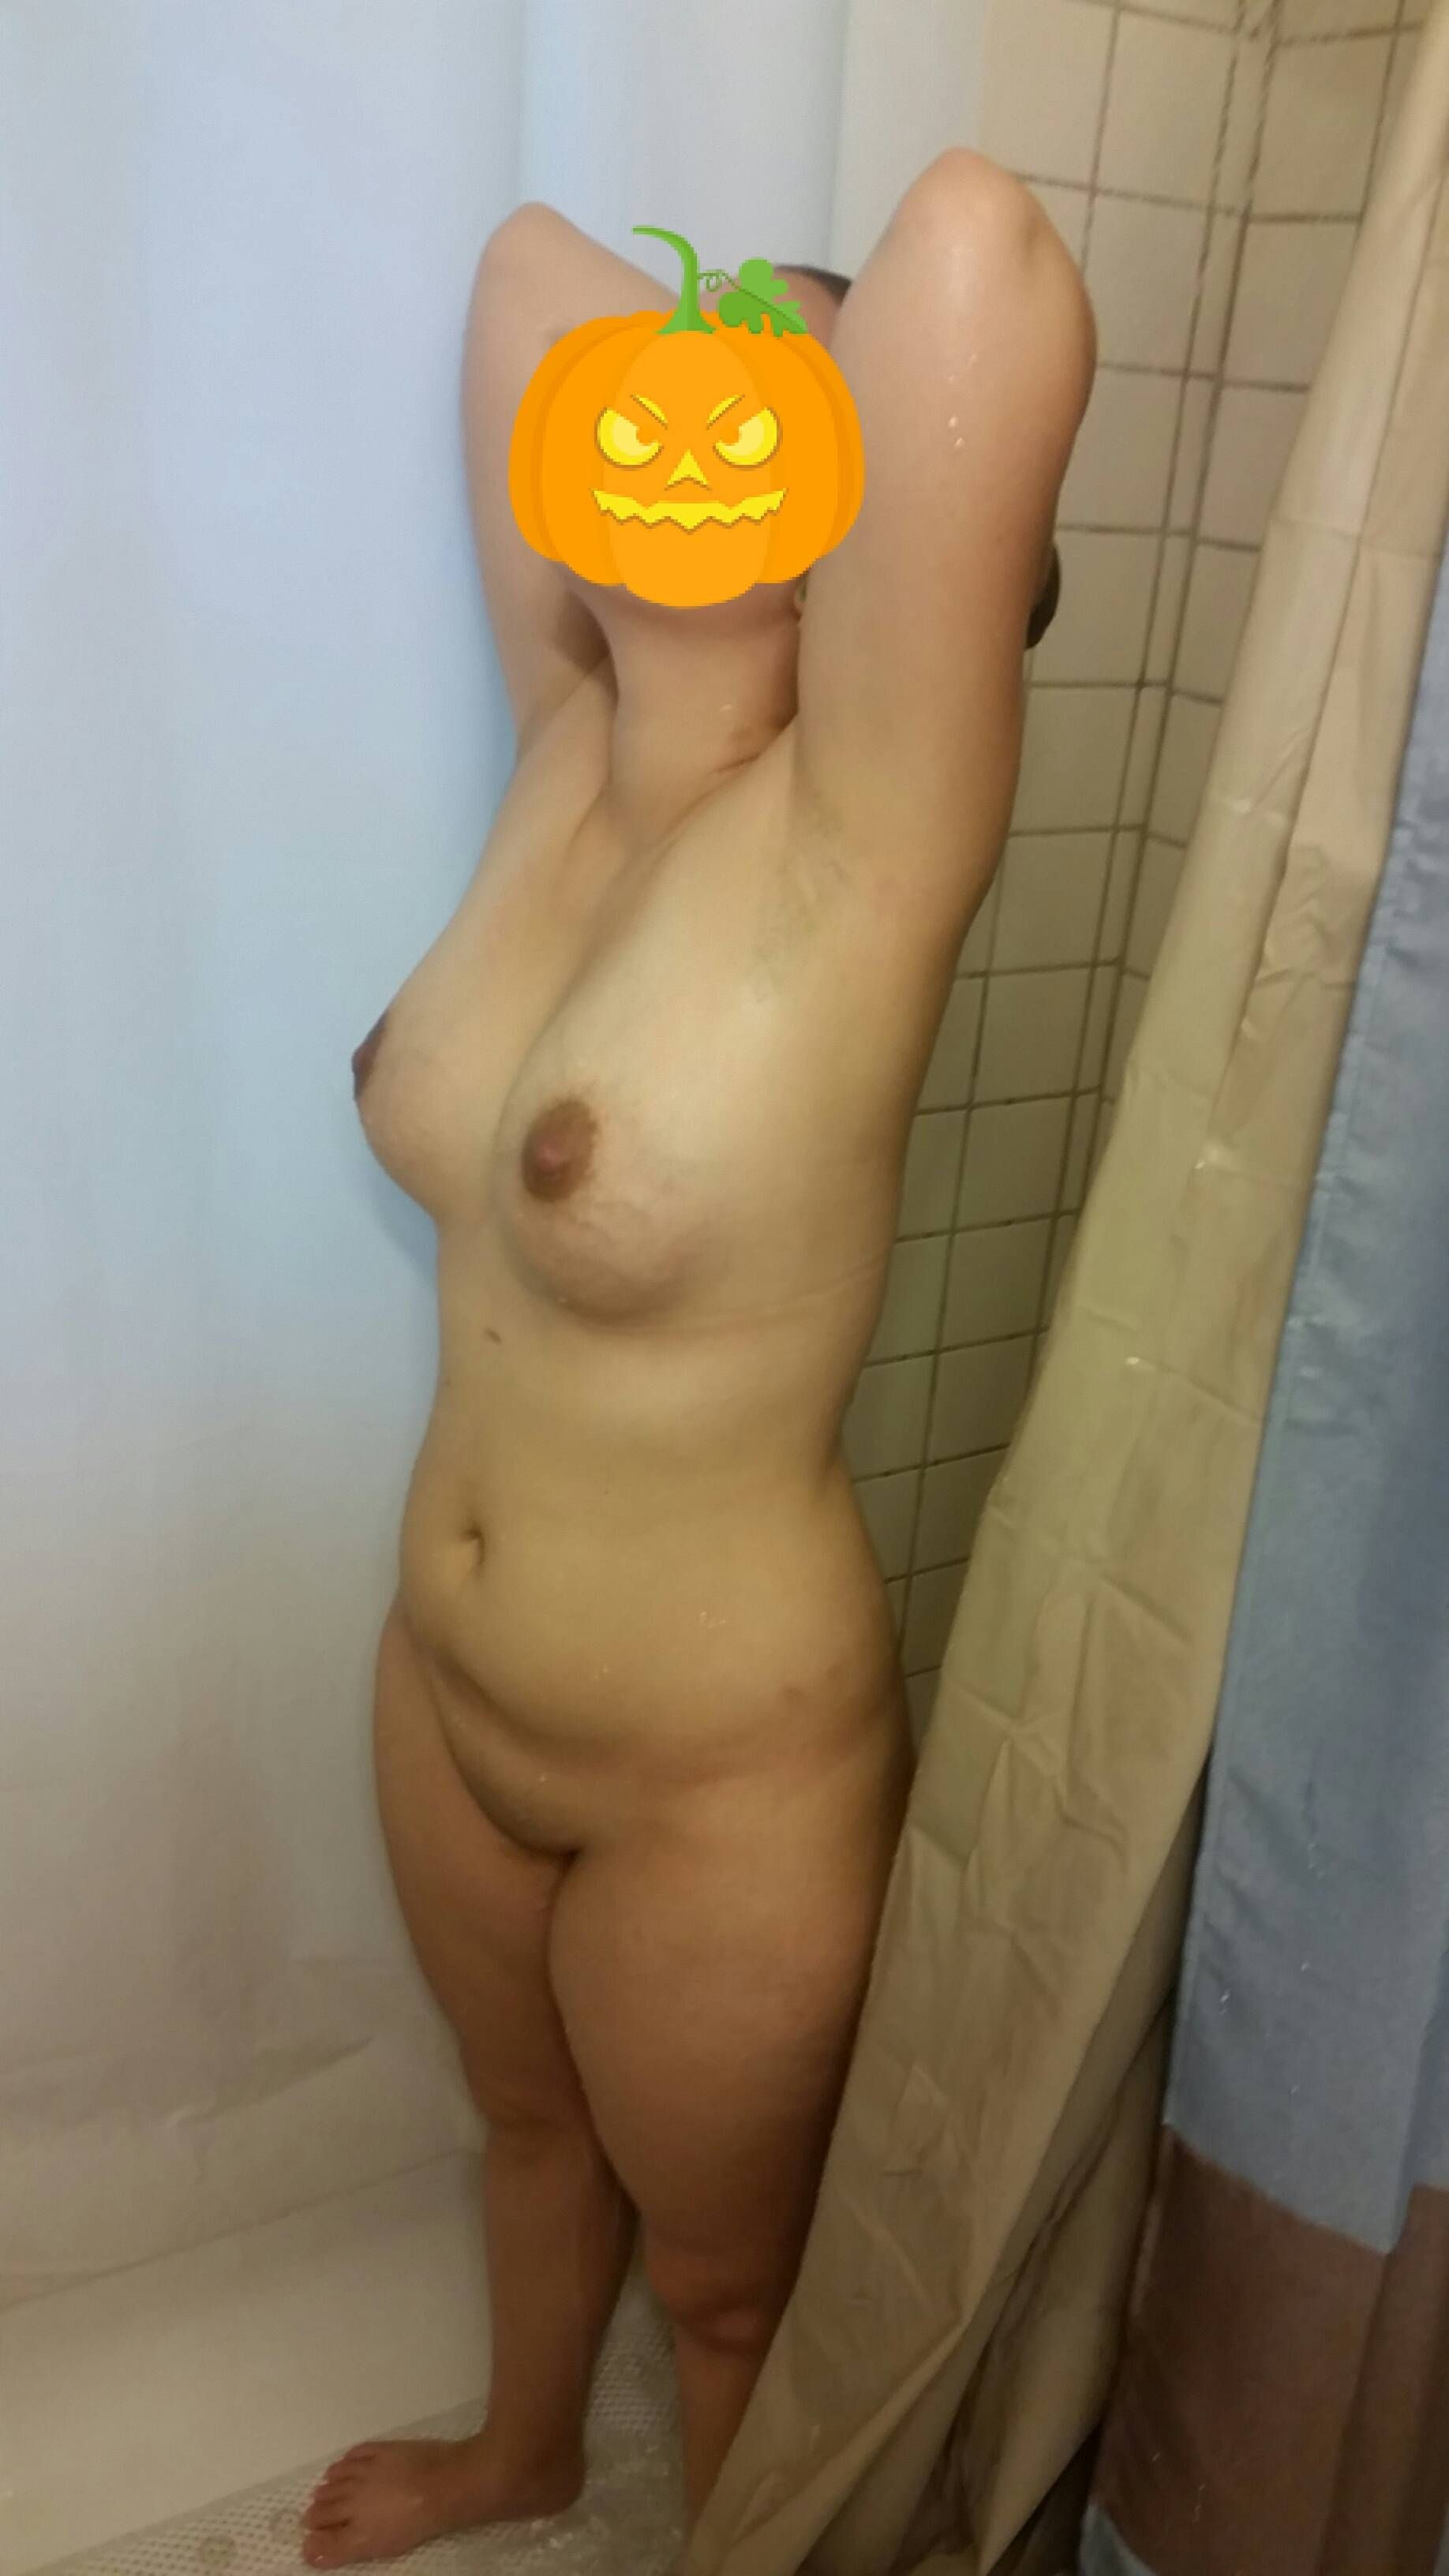 [Wife Porn Pics] Wife was feeling a bit dirty. Who wants to make her dirty again. She wants 150+ likes who can help.